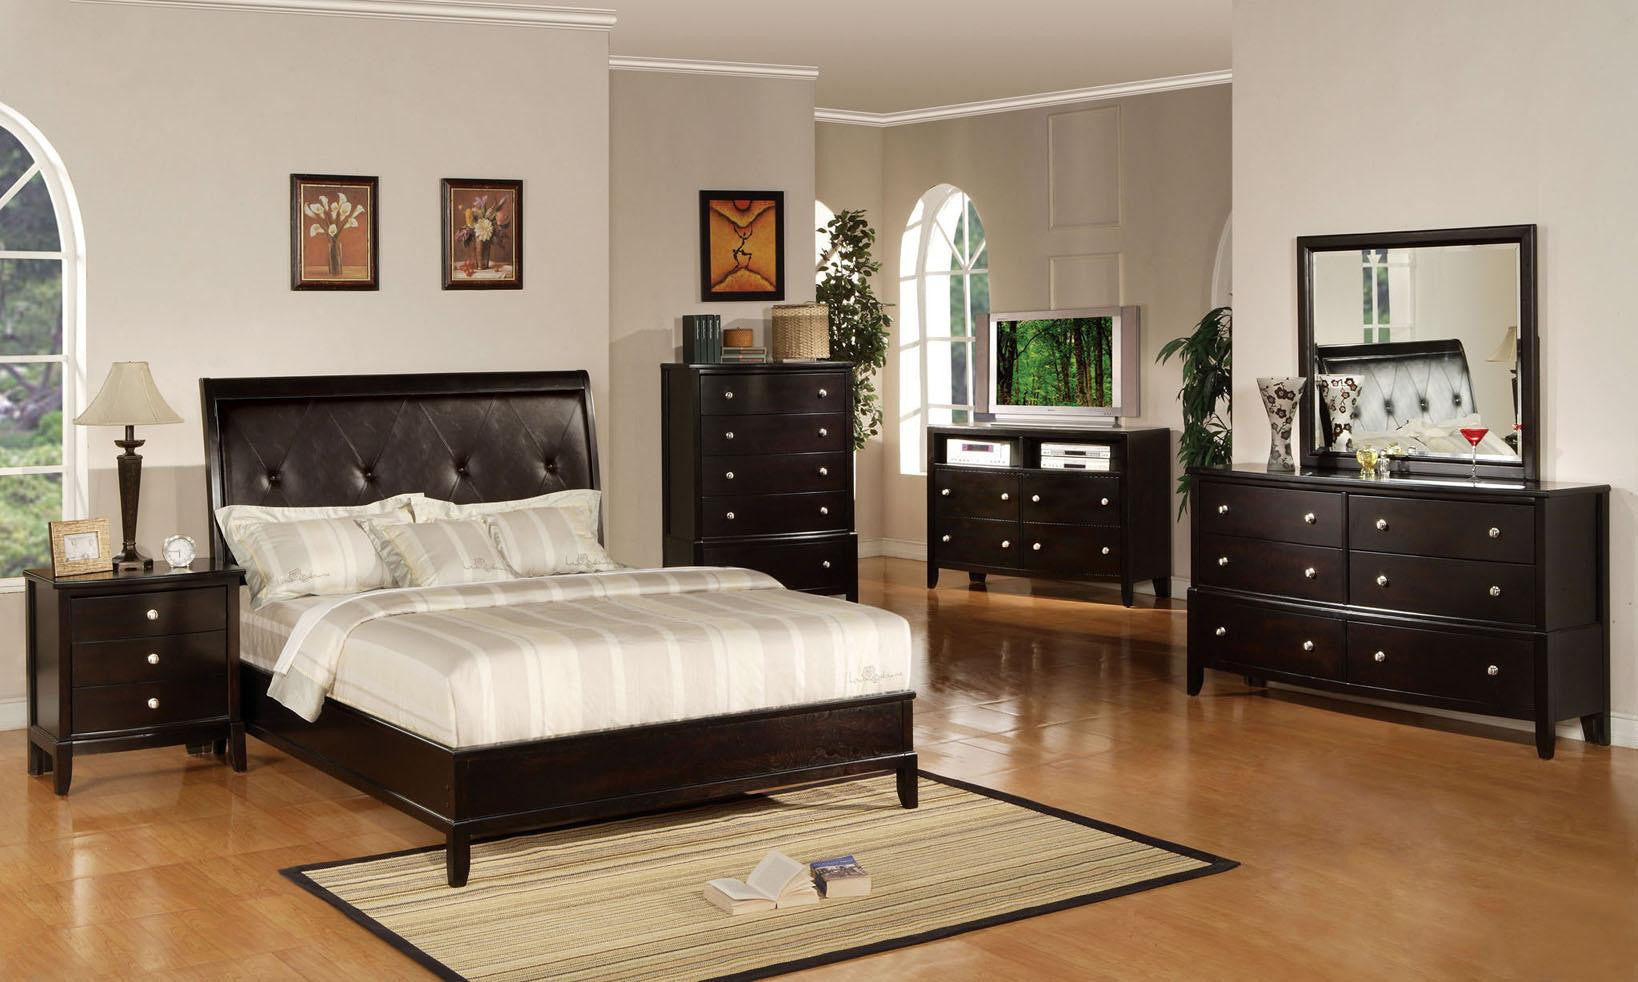 Acme Furniture Oxford Bedroom Group – Price Match Furniture